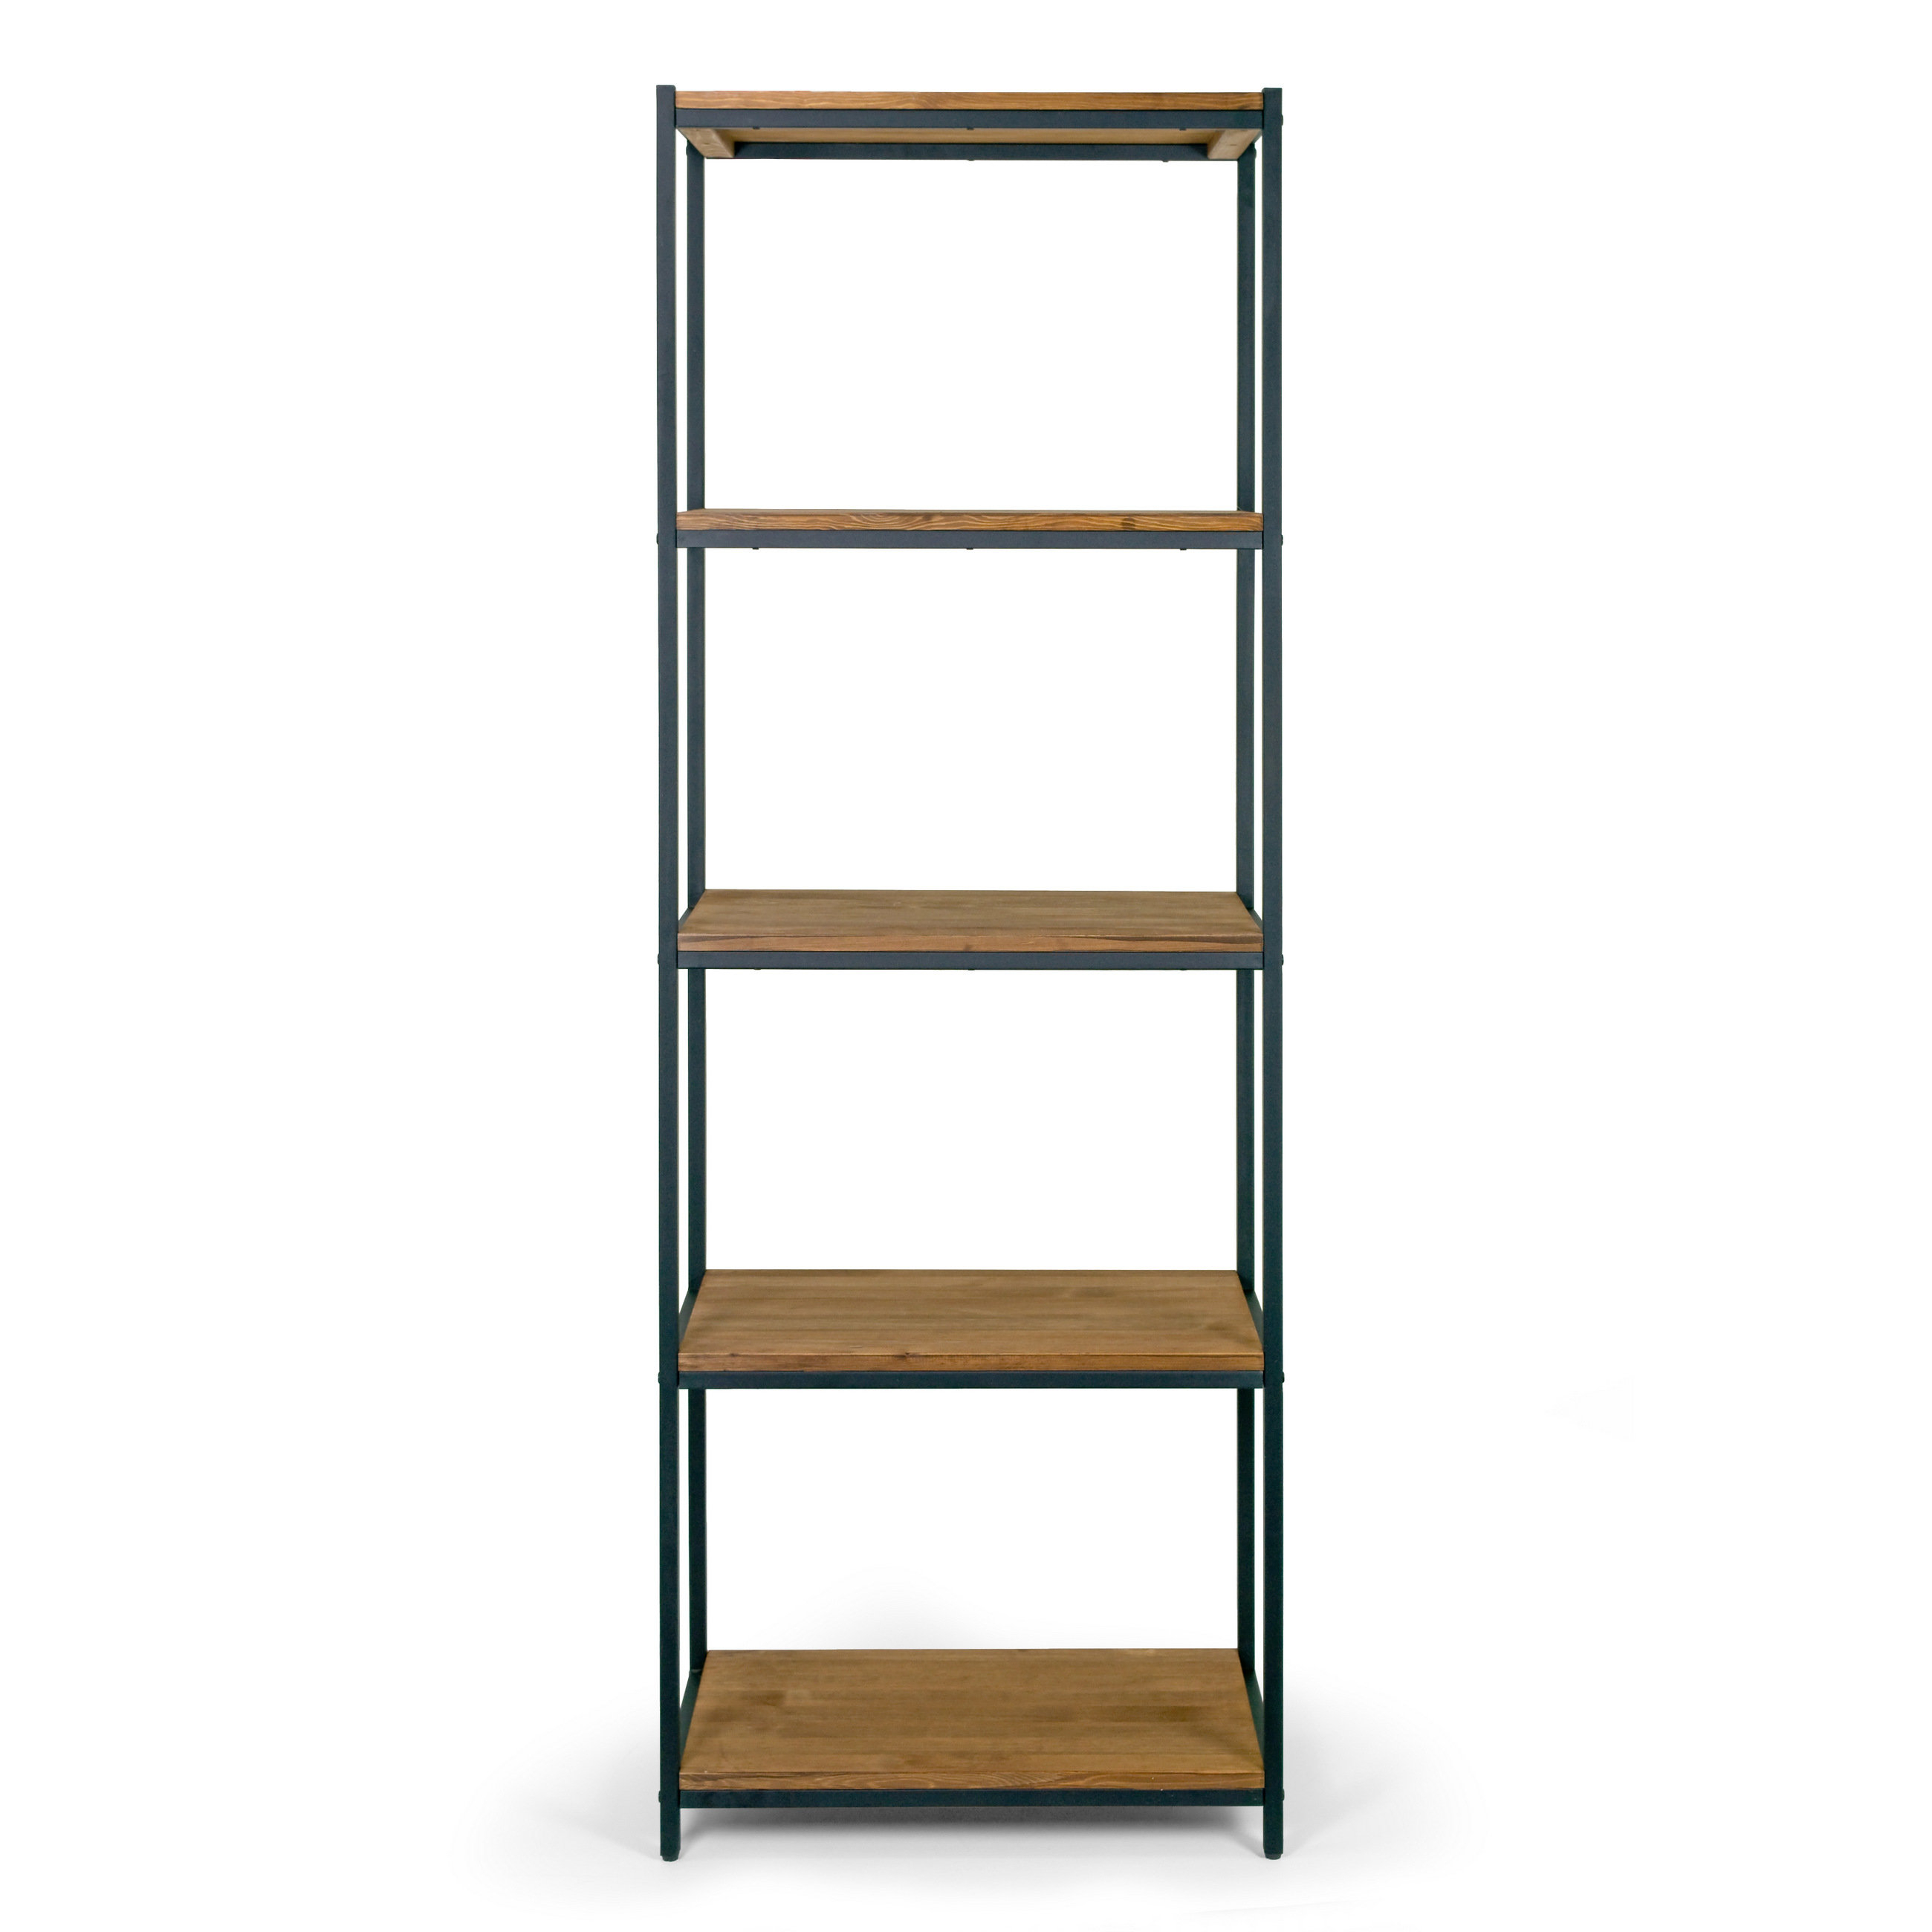 Best And Newest Champney Modern Etagere Bookcases Intended For Champney Etagere Bookcase (View 3 of 20)